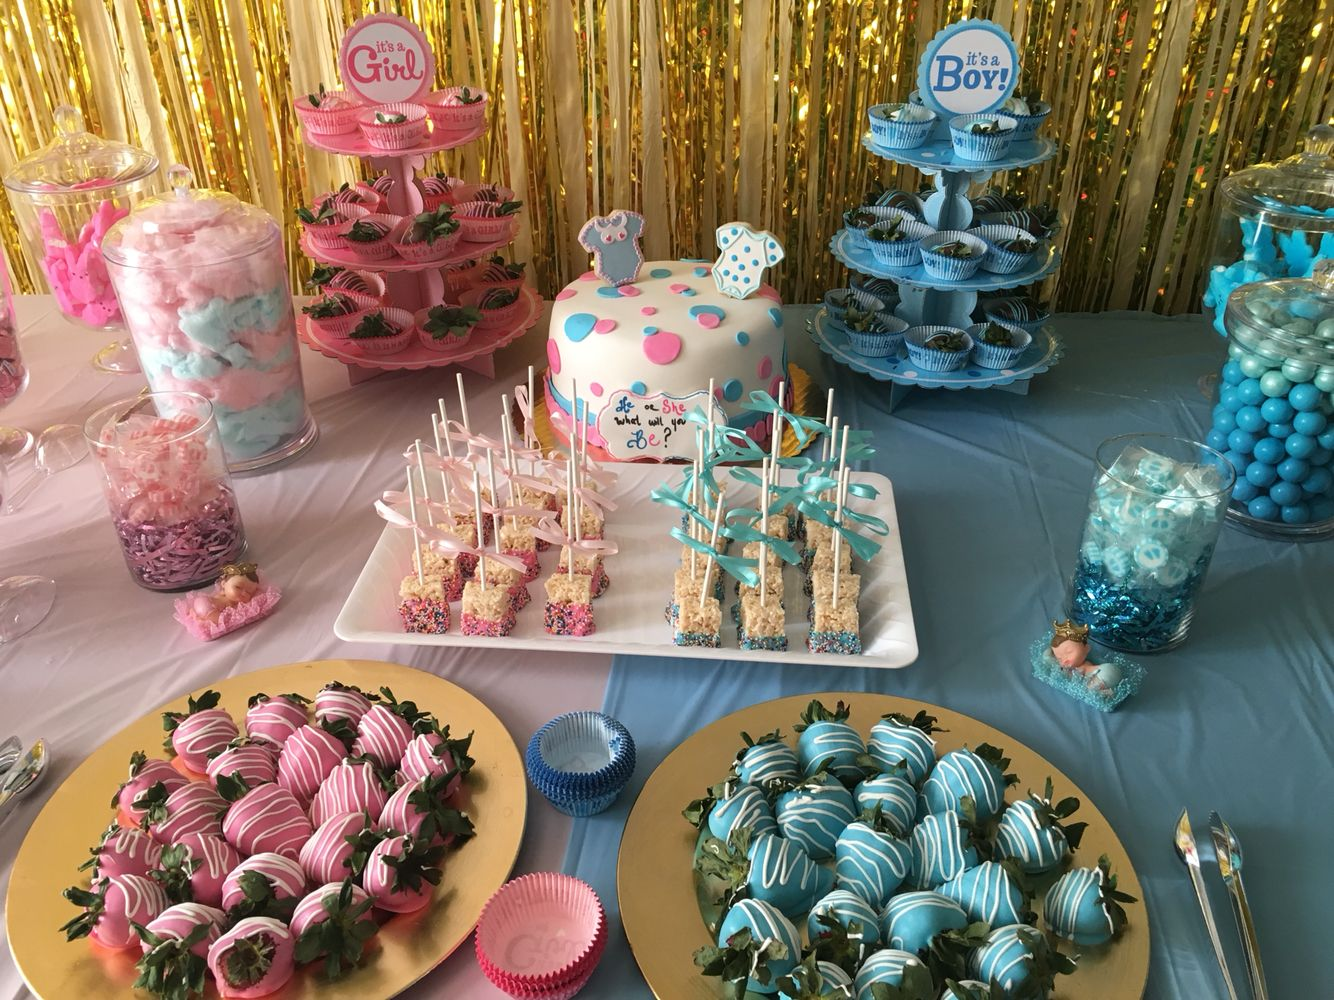 Gender Reveal Easy Diy Snacks : 50 Gender Reveal Cakes To Surprise The Family and Yourself ...